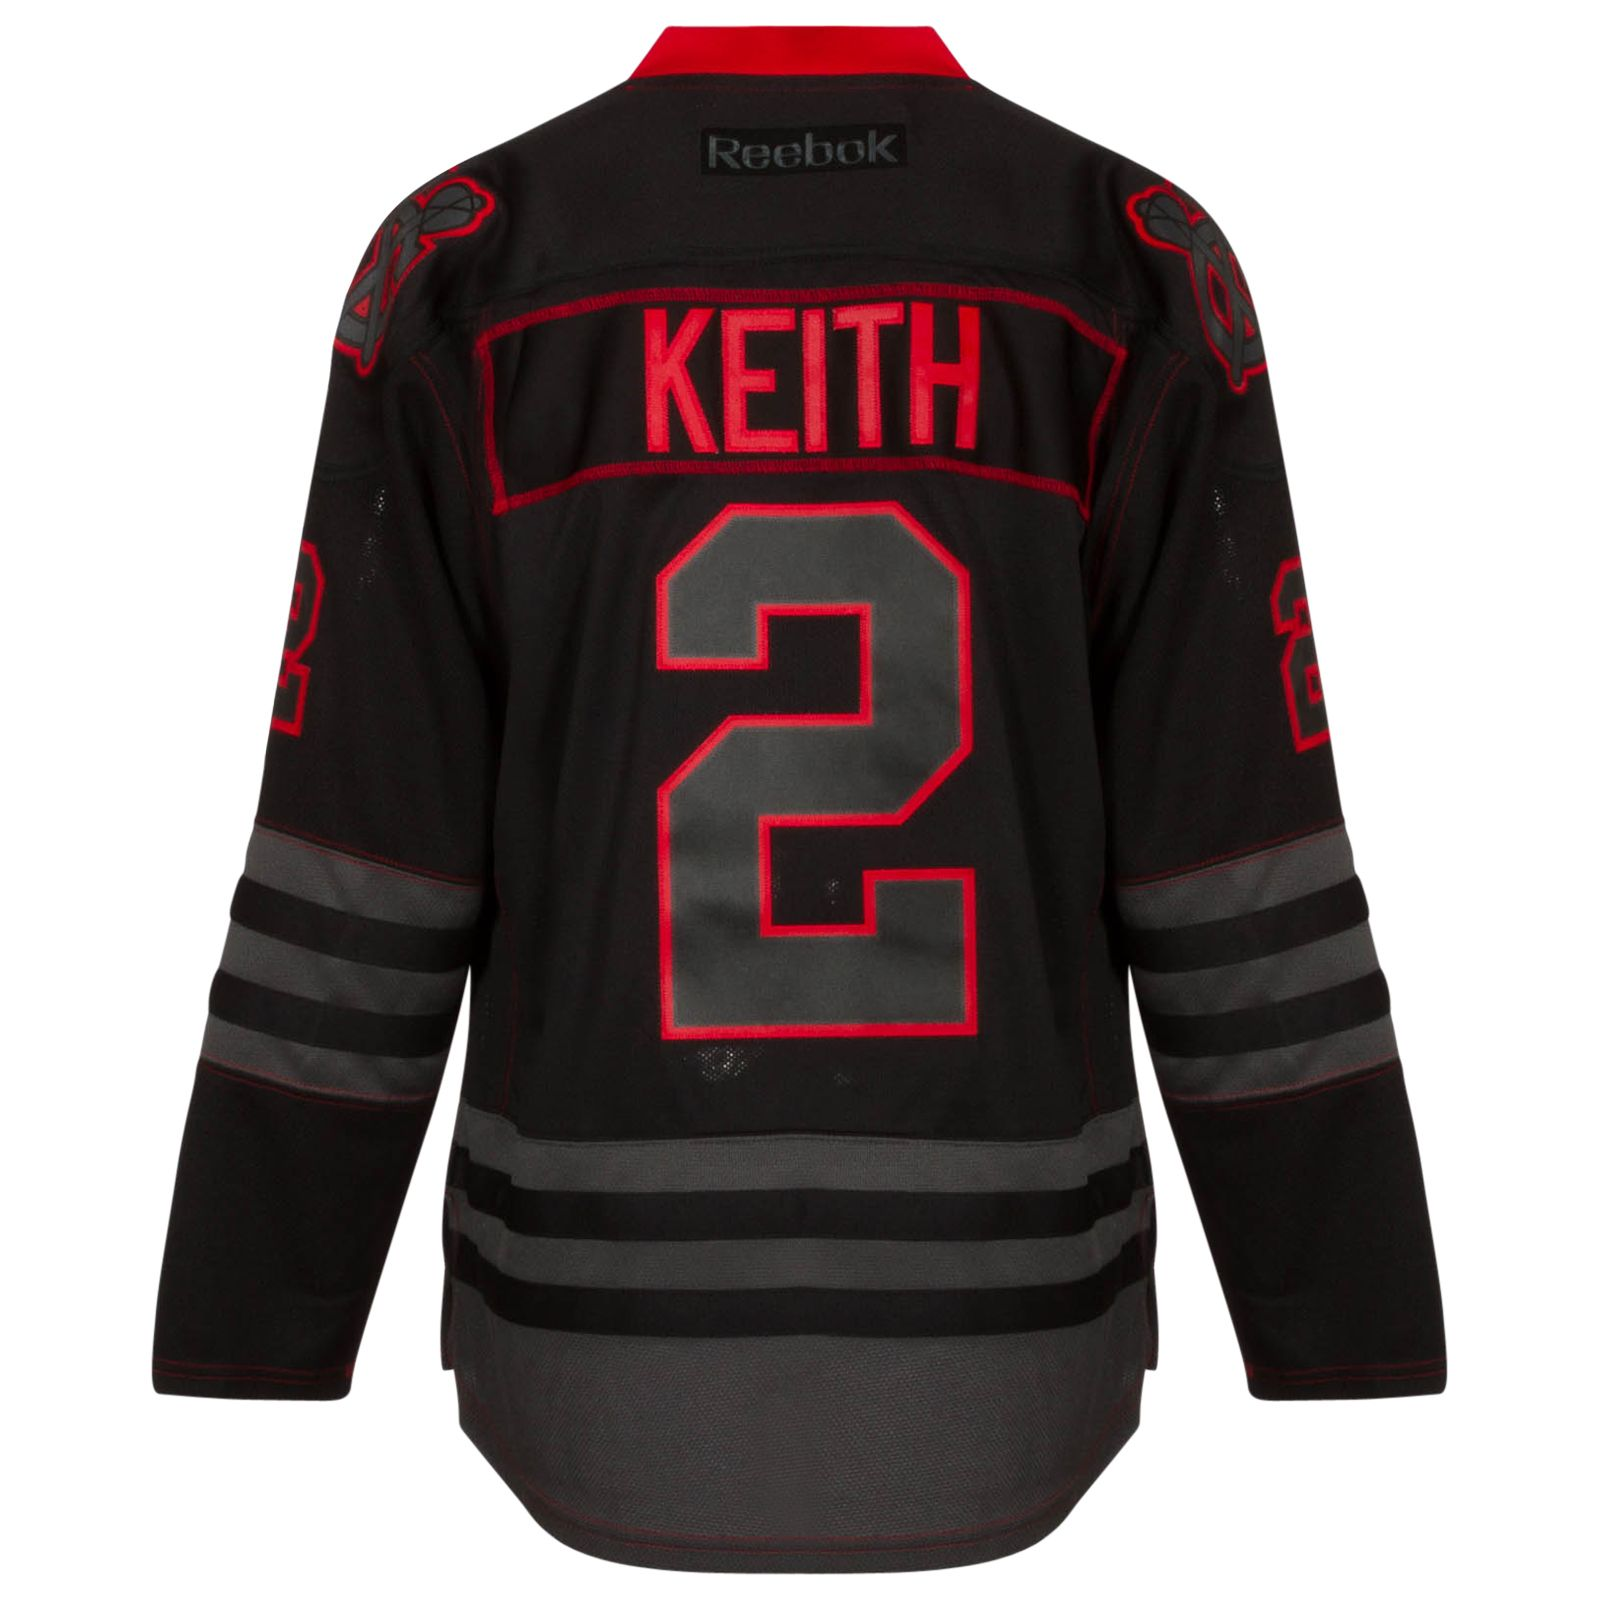 ... 2 youth hockey jersey green 6a359 0d309  sweden chicago blackhawks mens  black ice duncan keith premier jersey by reebok chicago blackhawks ee017  c7ca8 35a268bdb